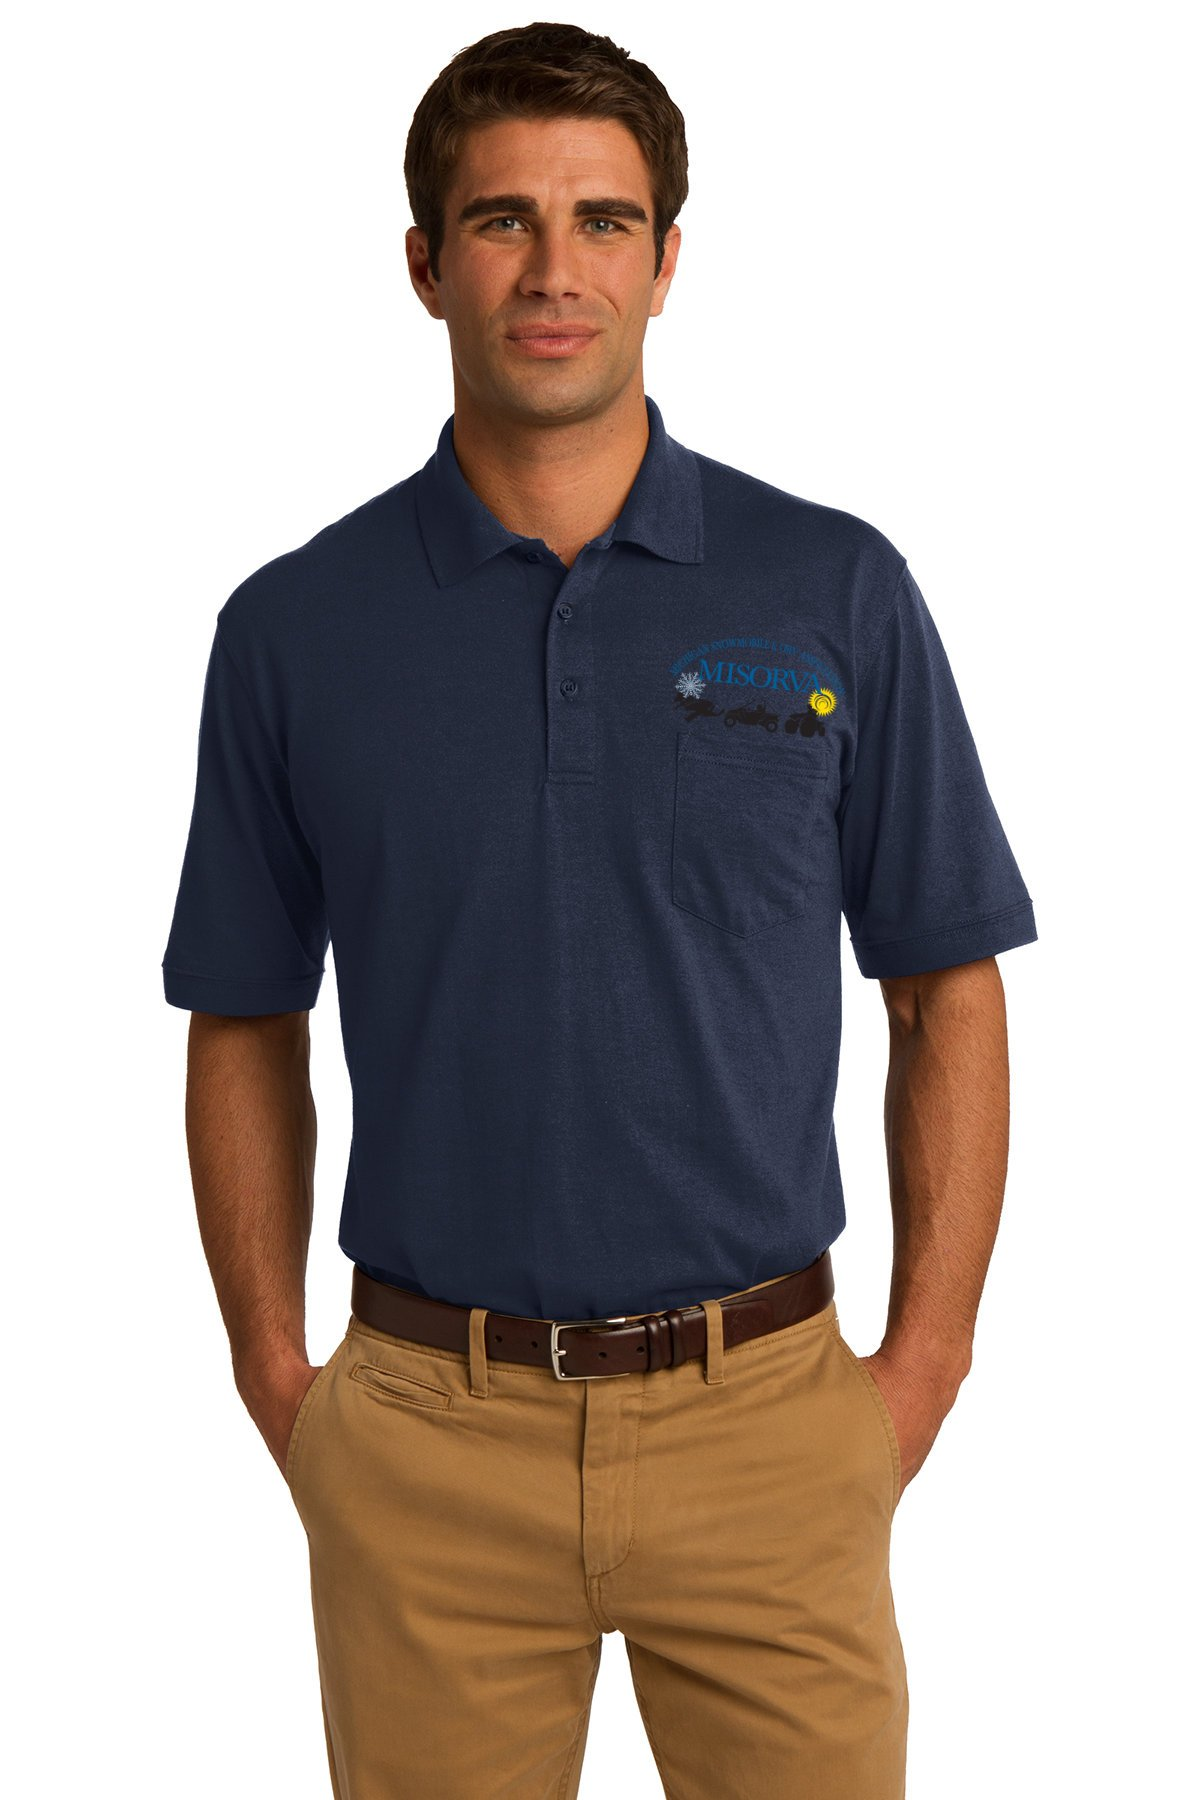 KP55P-mens-pocket-polo-navy